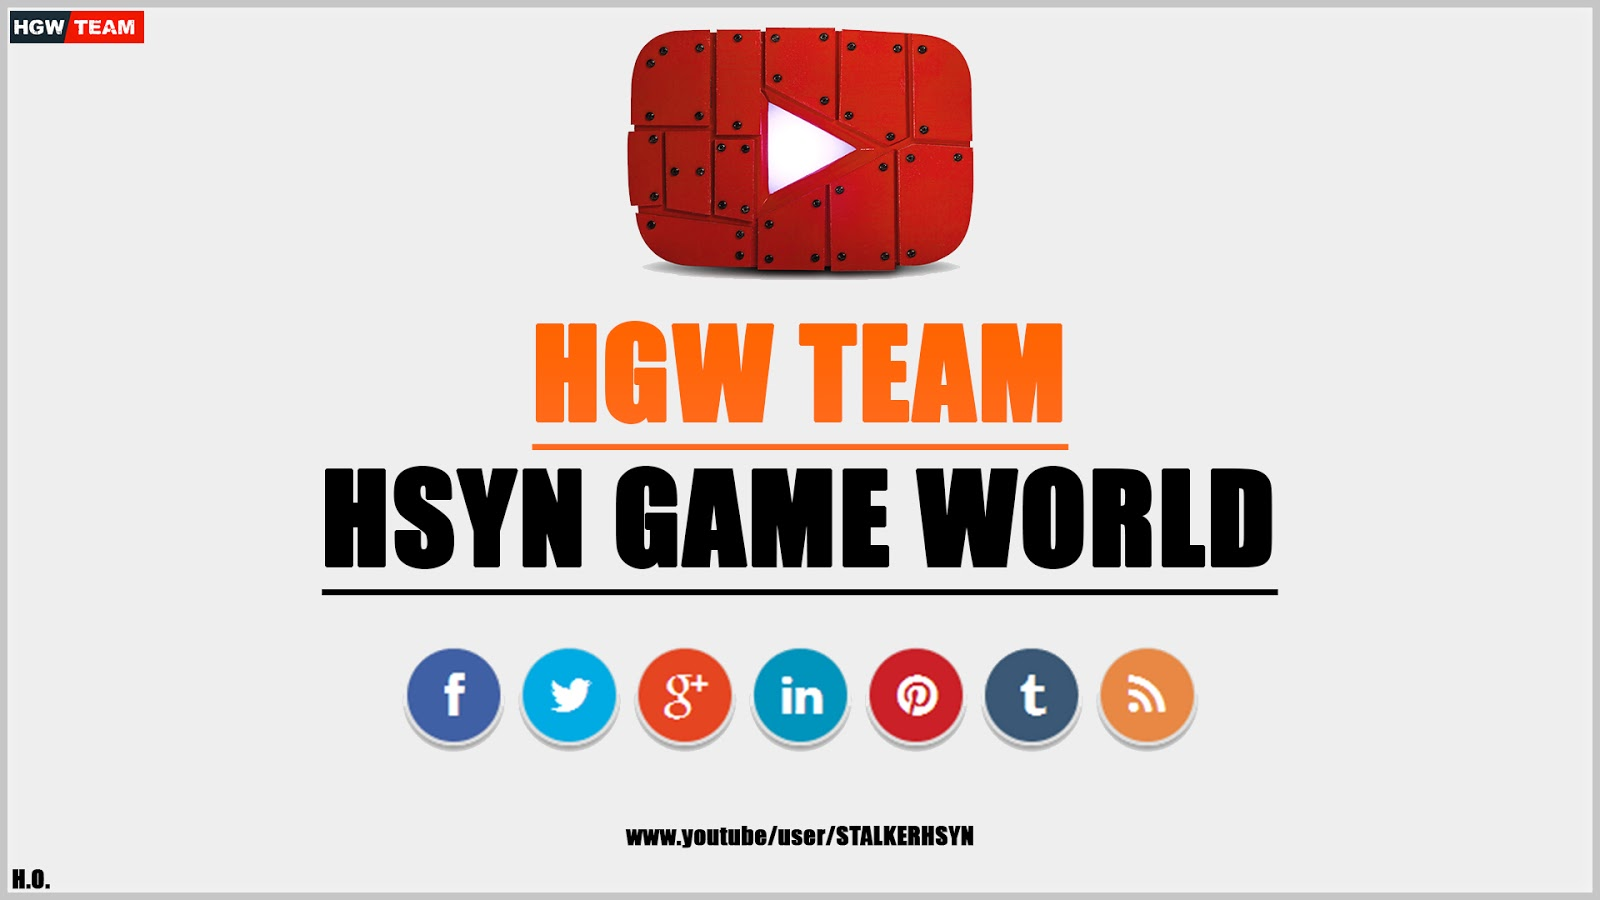 HQ HSYN GAME WORLD Wallpapers | File 105.04Kb